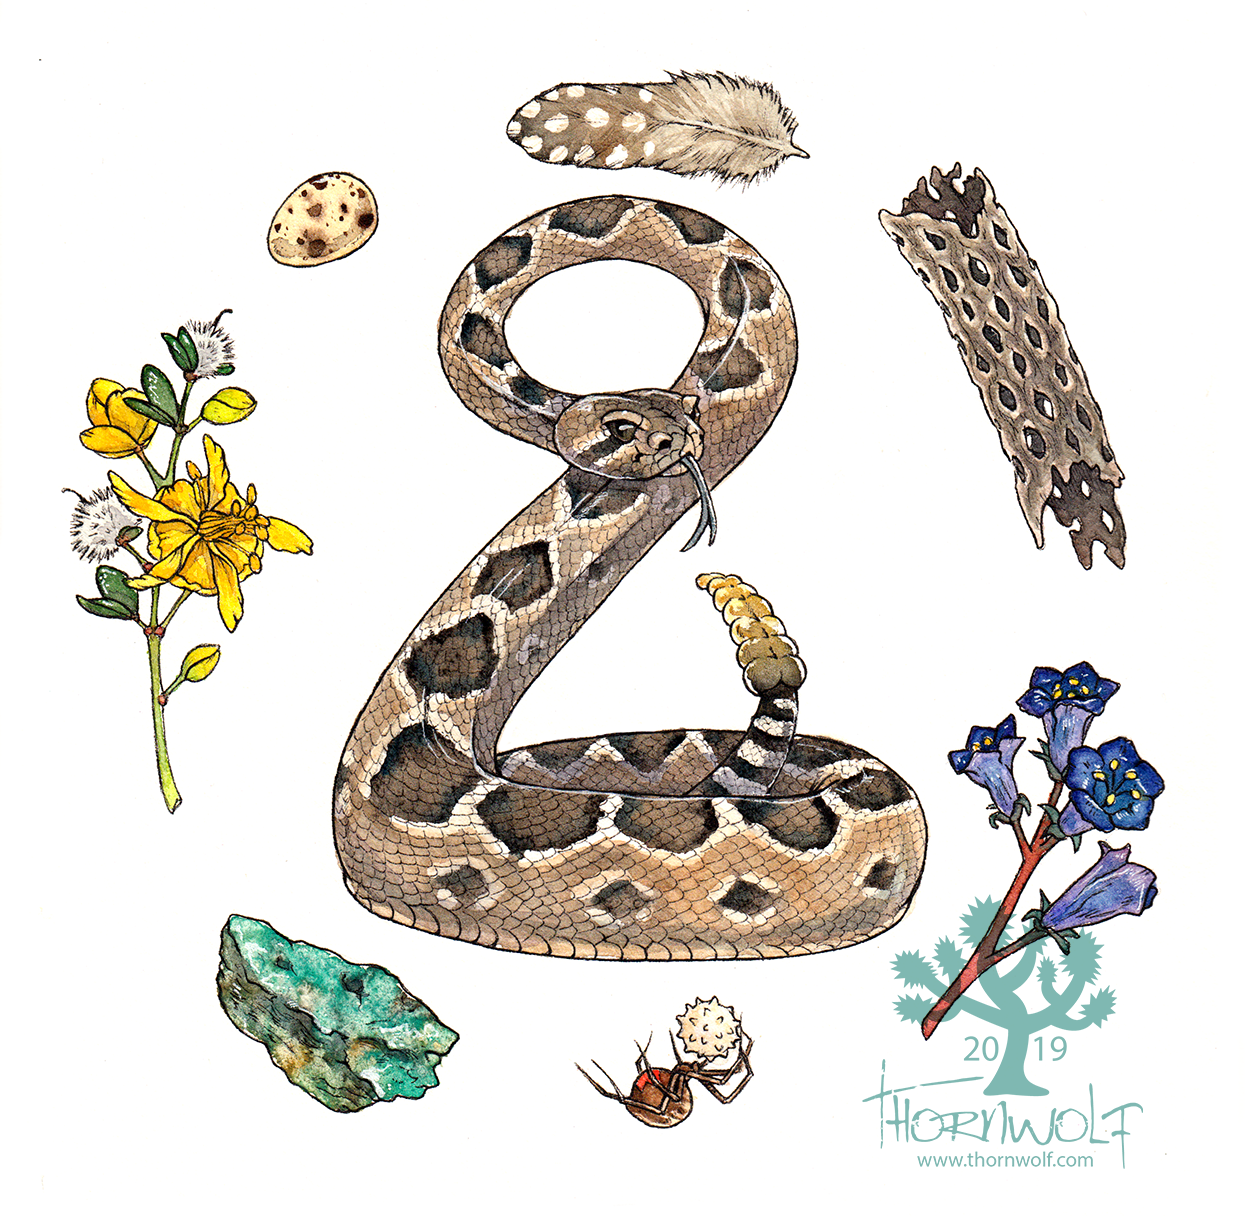 Western diamondback rattlesnake with quail feather and egg, creosote bush, copper ore, brown widow spider, desert Canterbury bells, and cholla cactus skeleton.